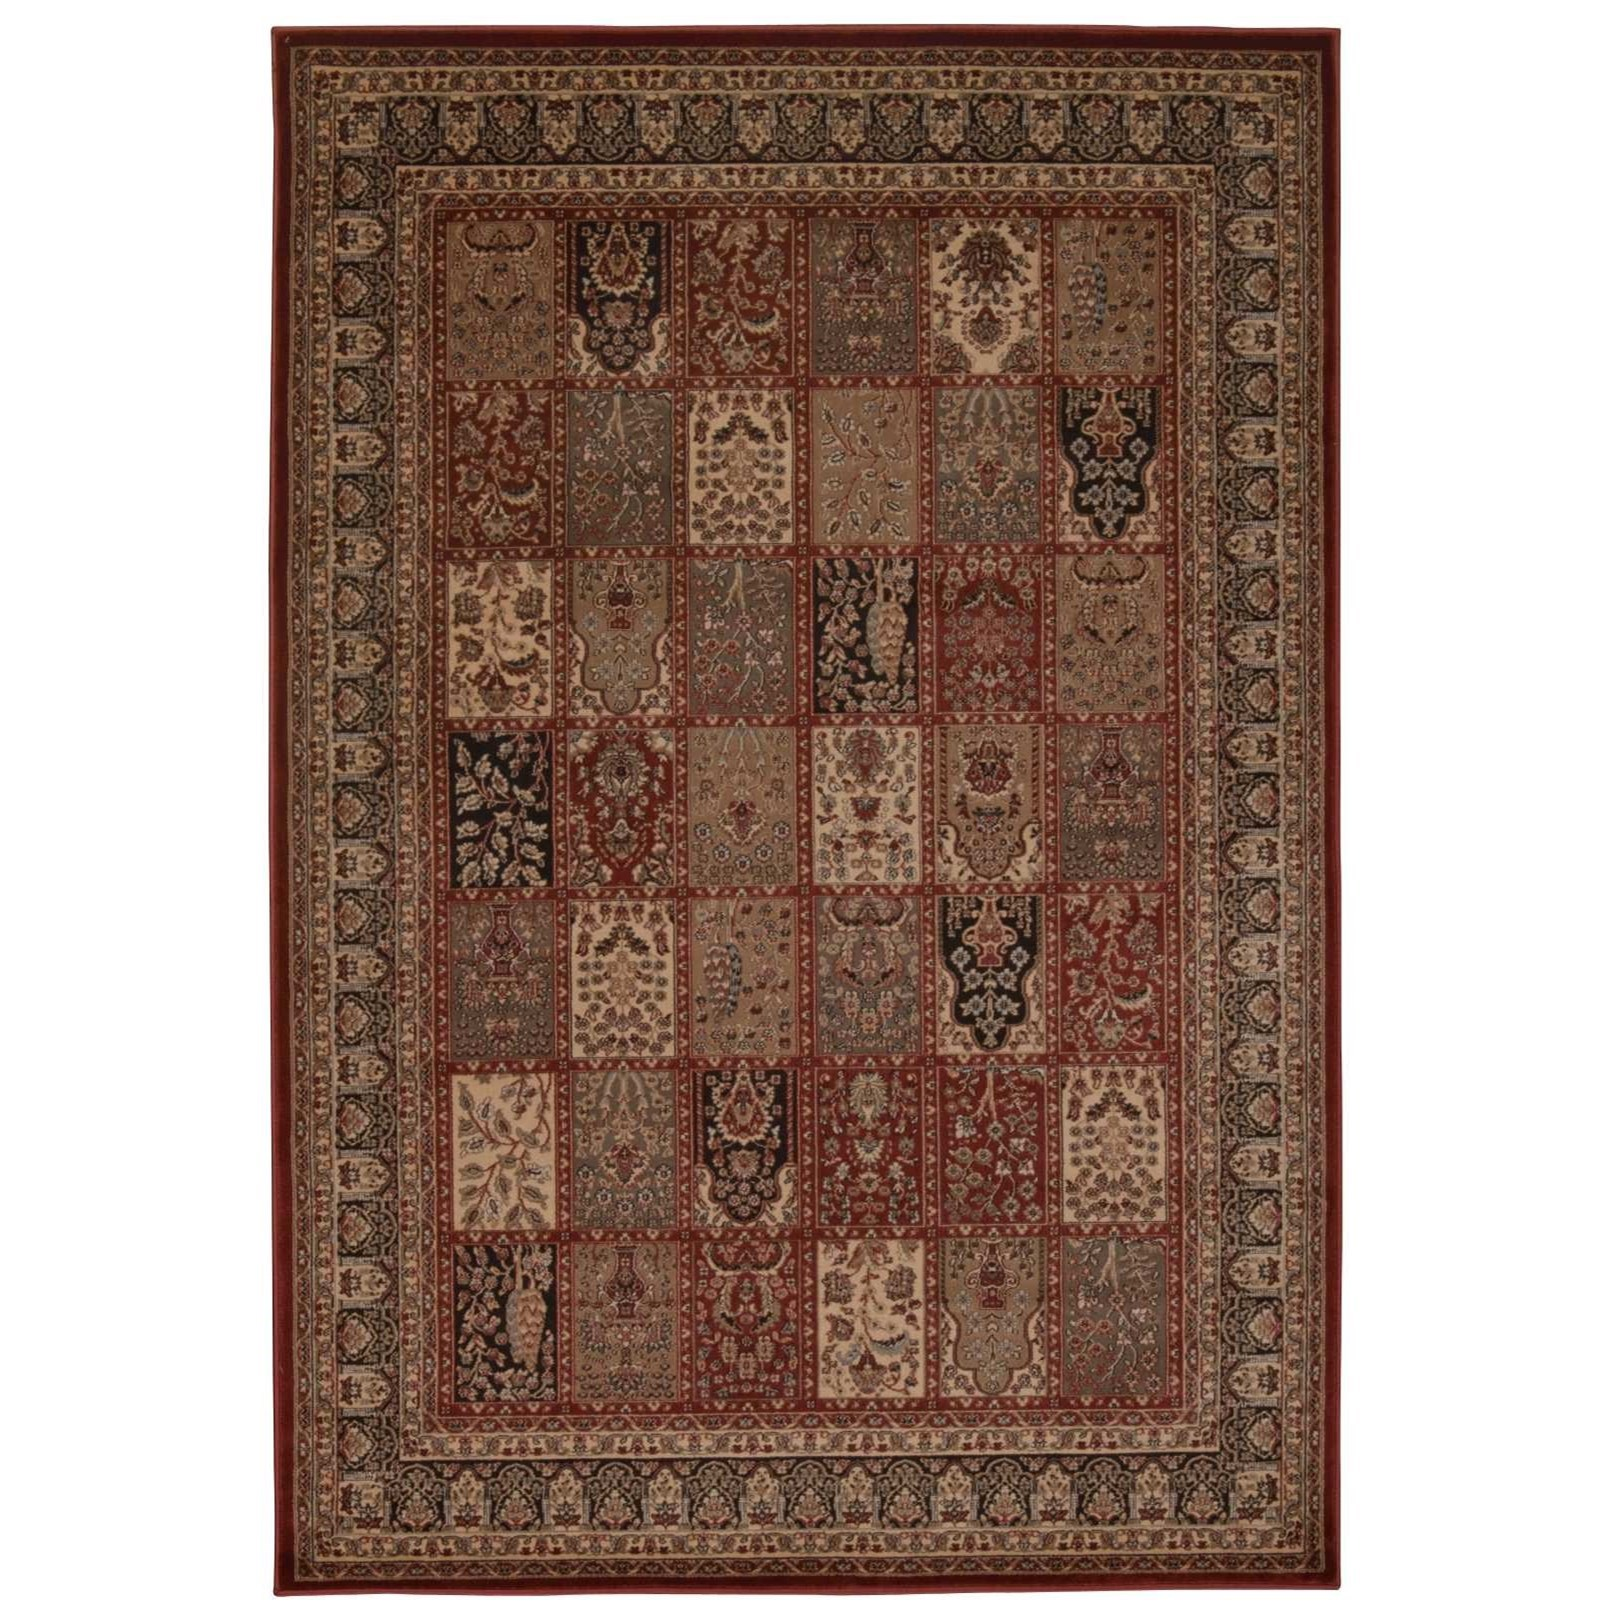 "Ararat 5'3"" x 7'4"" Burgundy Rectangle Rug by Nourison at Sprintz Furniture"